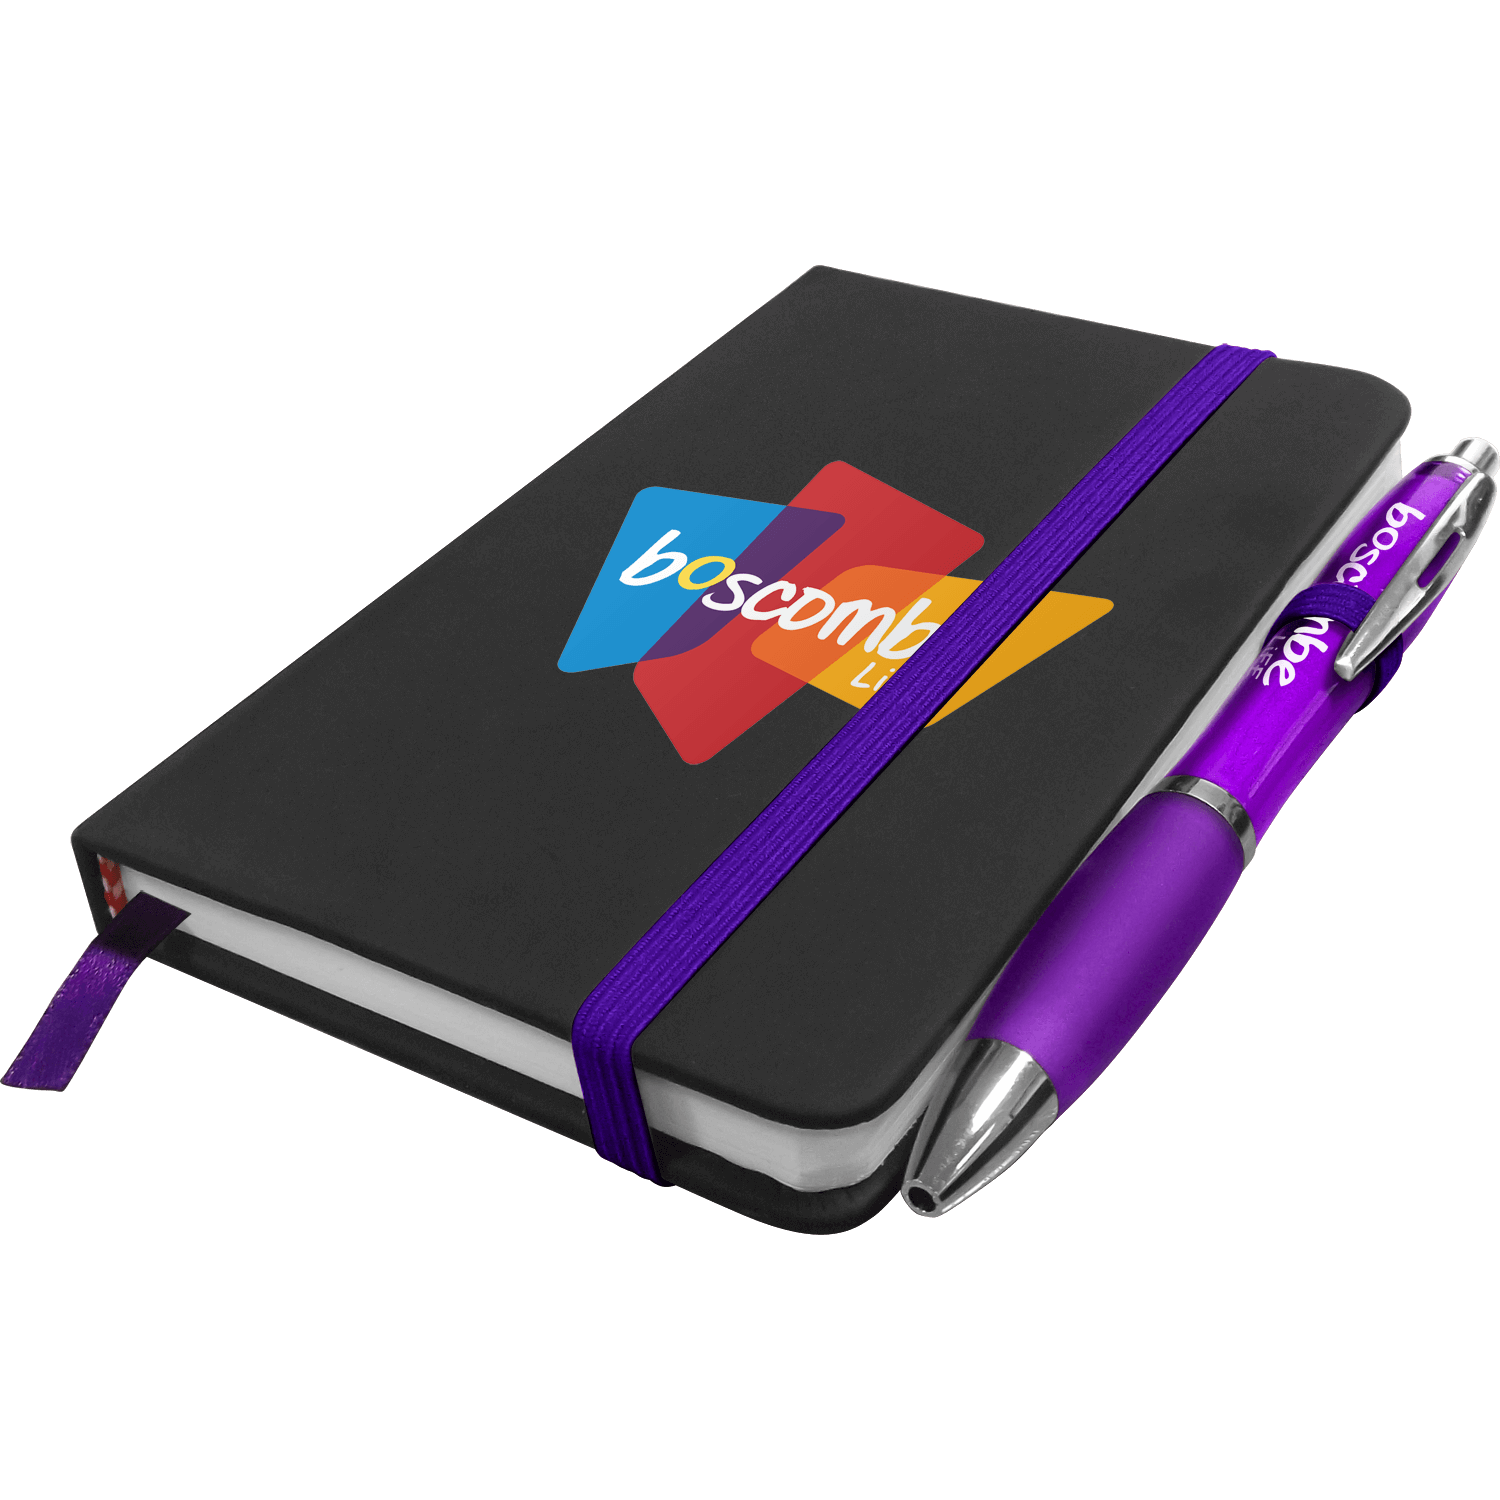 A6 Full Colour Noir Notebook with Free Curvy Pen